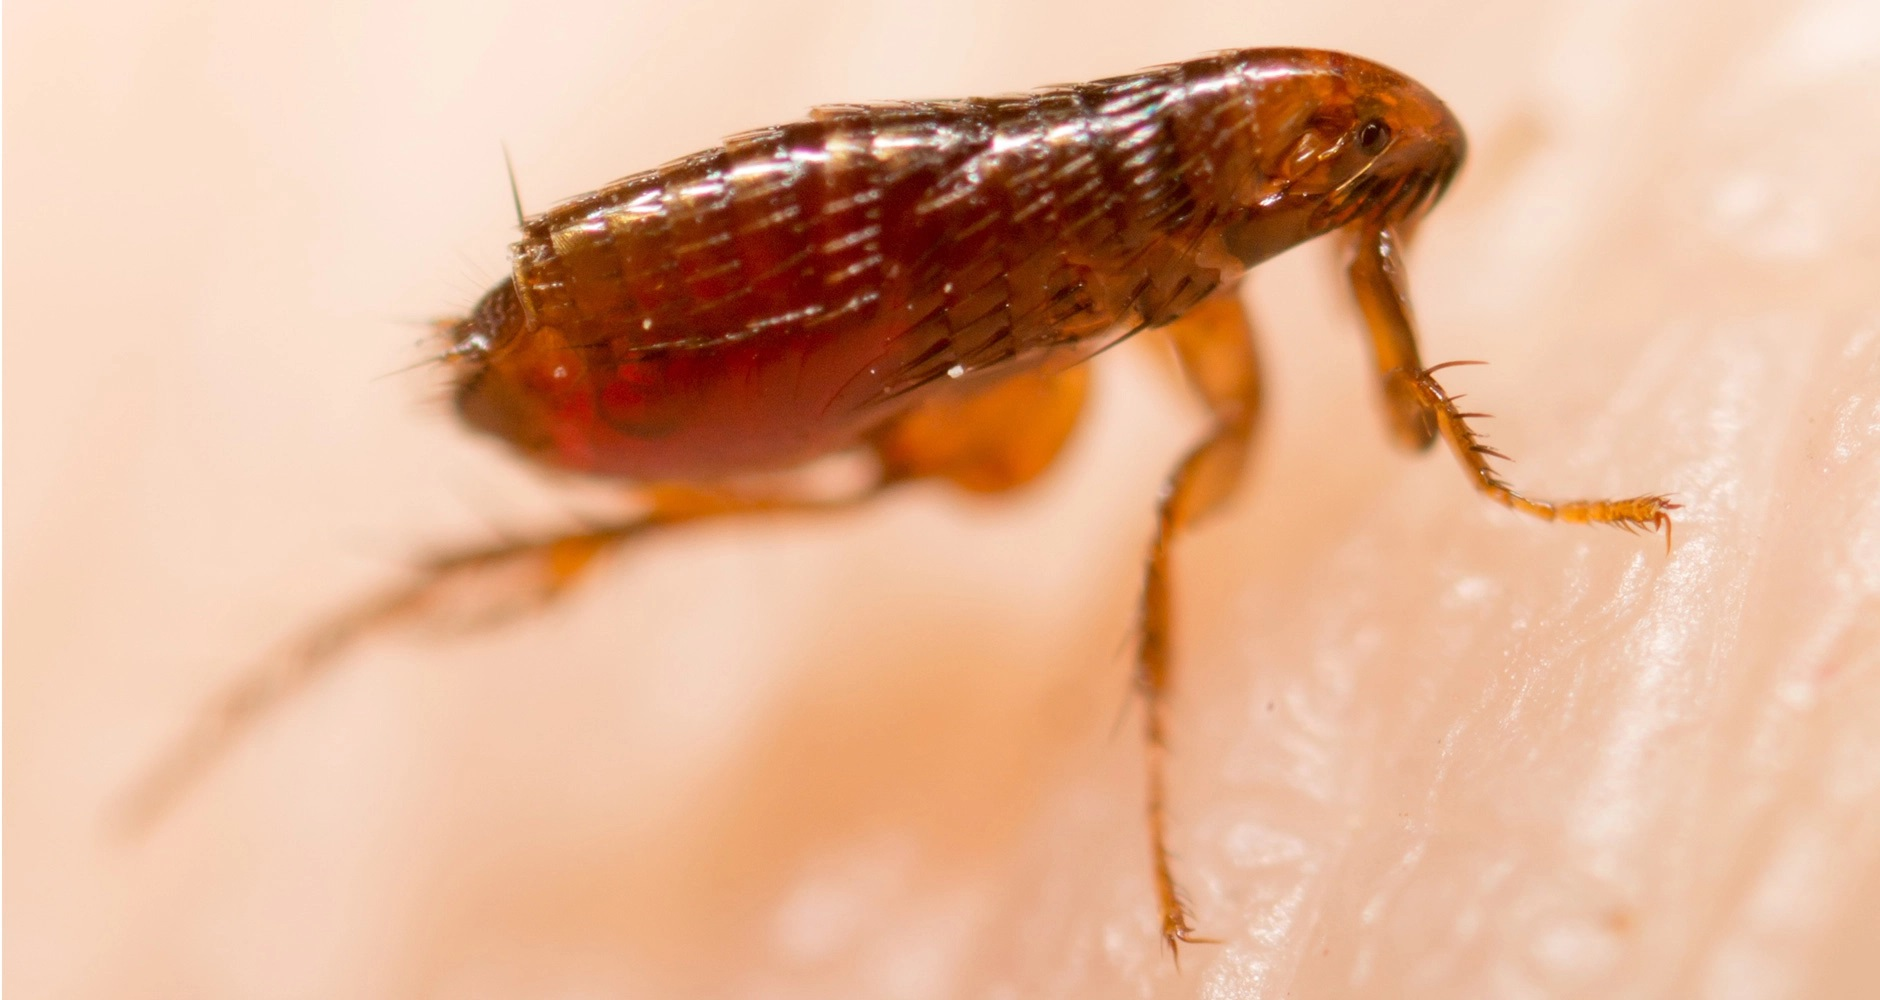 How To Get Rid Of Fleas With Salt - Image By farmersalmanac